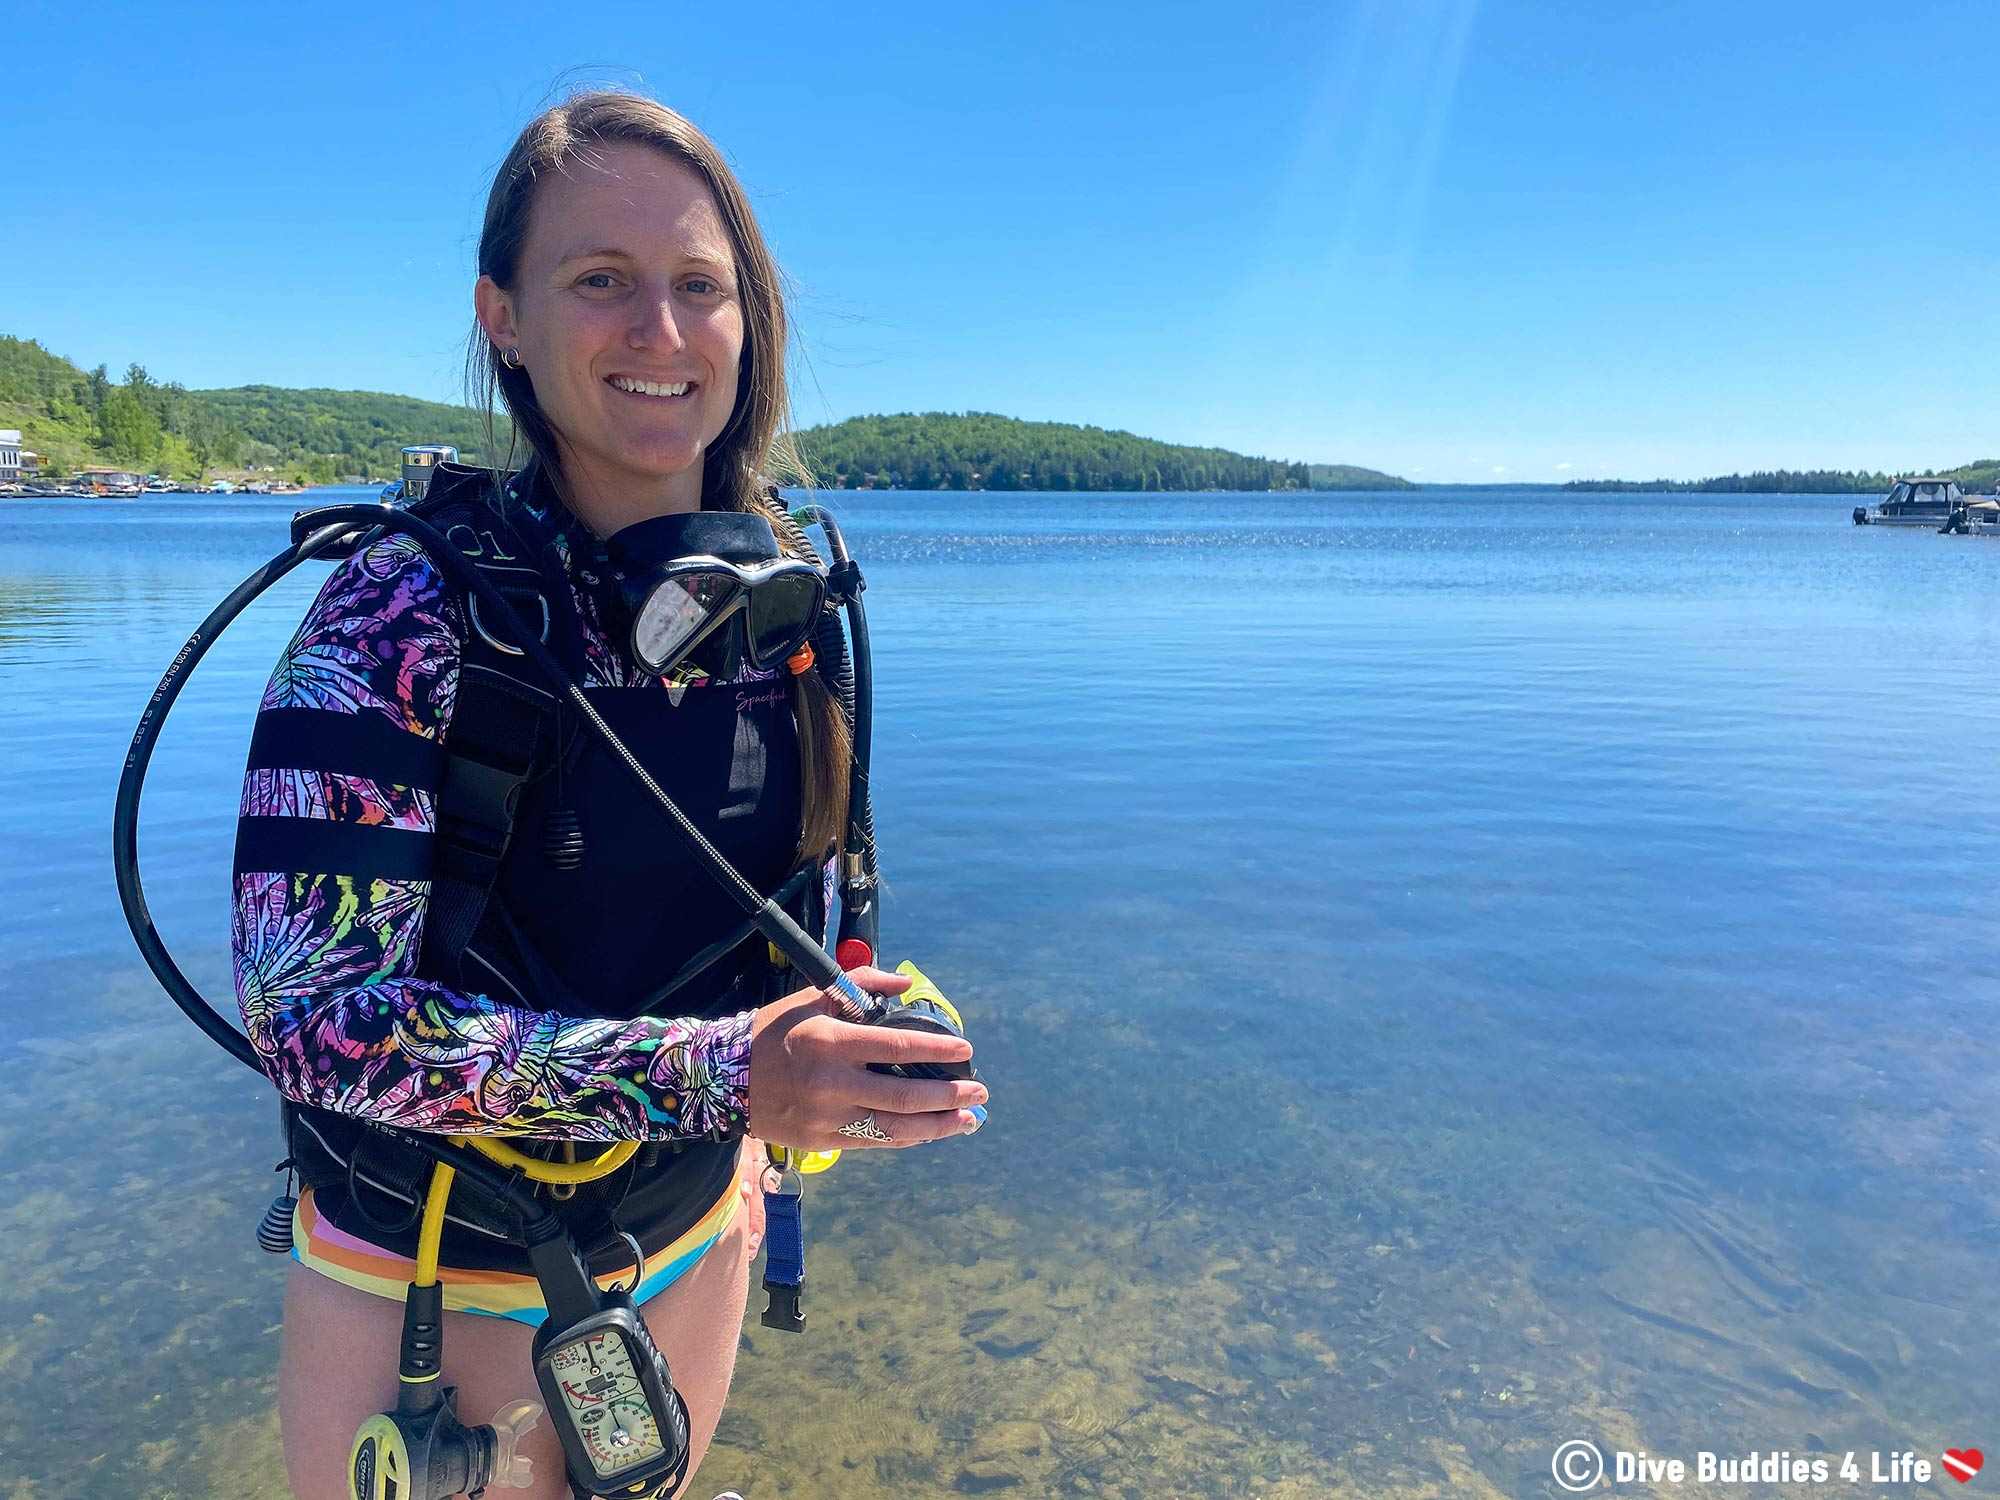 Ali At The Water Edge Holding Her Scuba Diving Regulator In The Spacefish Army Rashguard